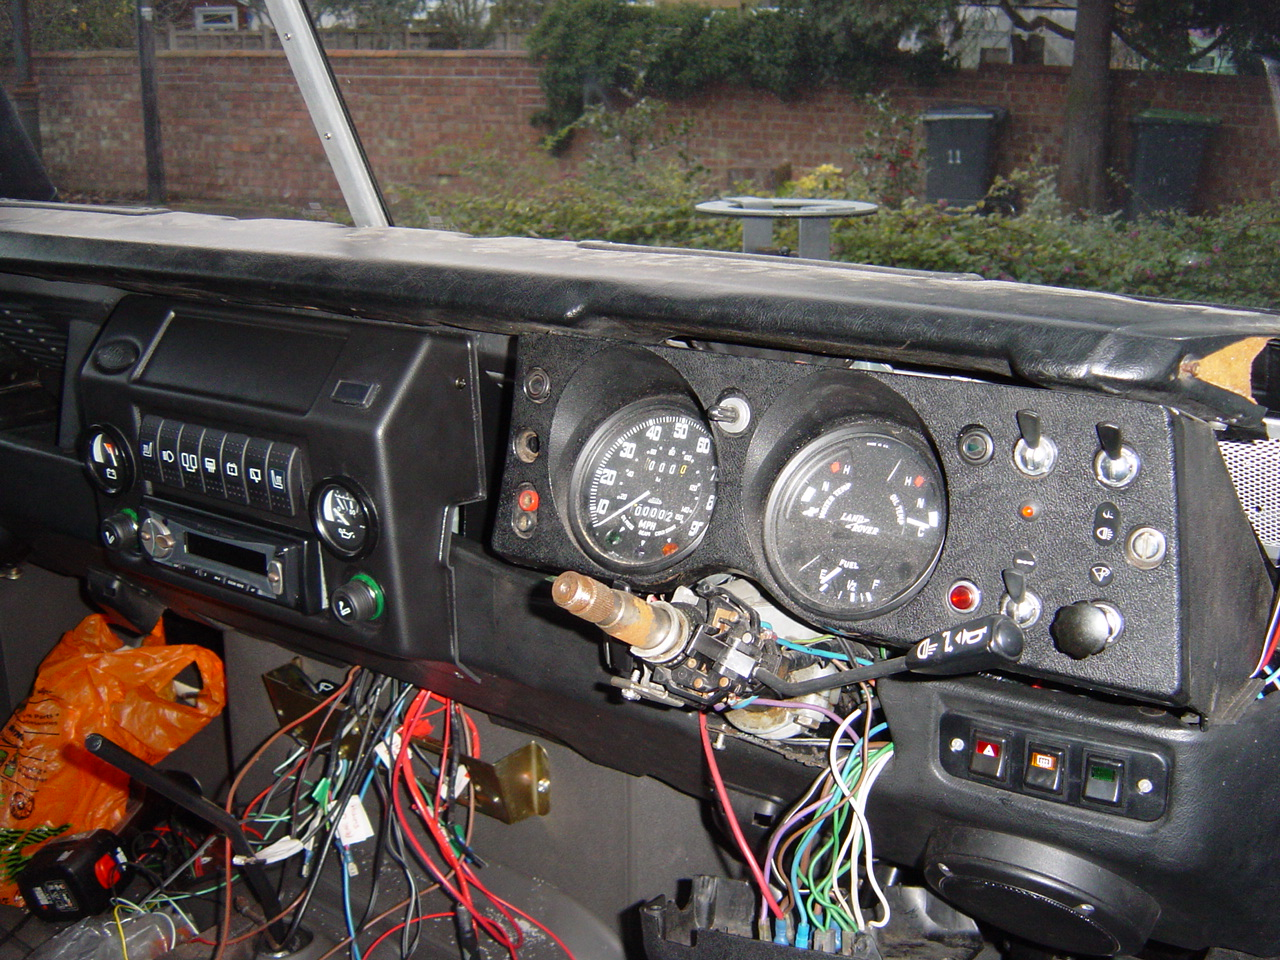 series iii dash mods land rover wiring diagram series 1974 series 3 land rover wiring diagram